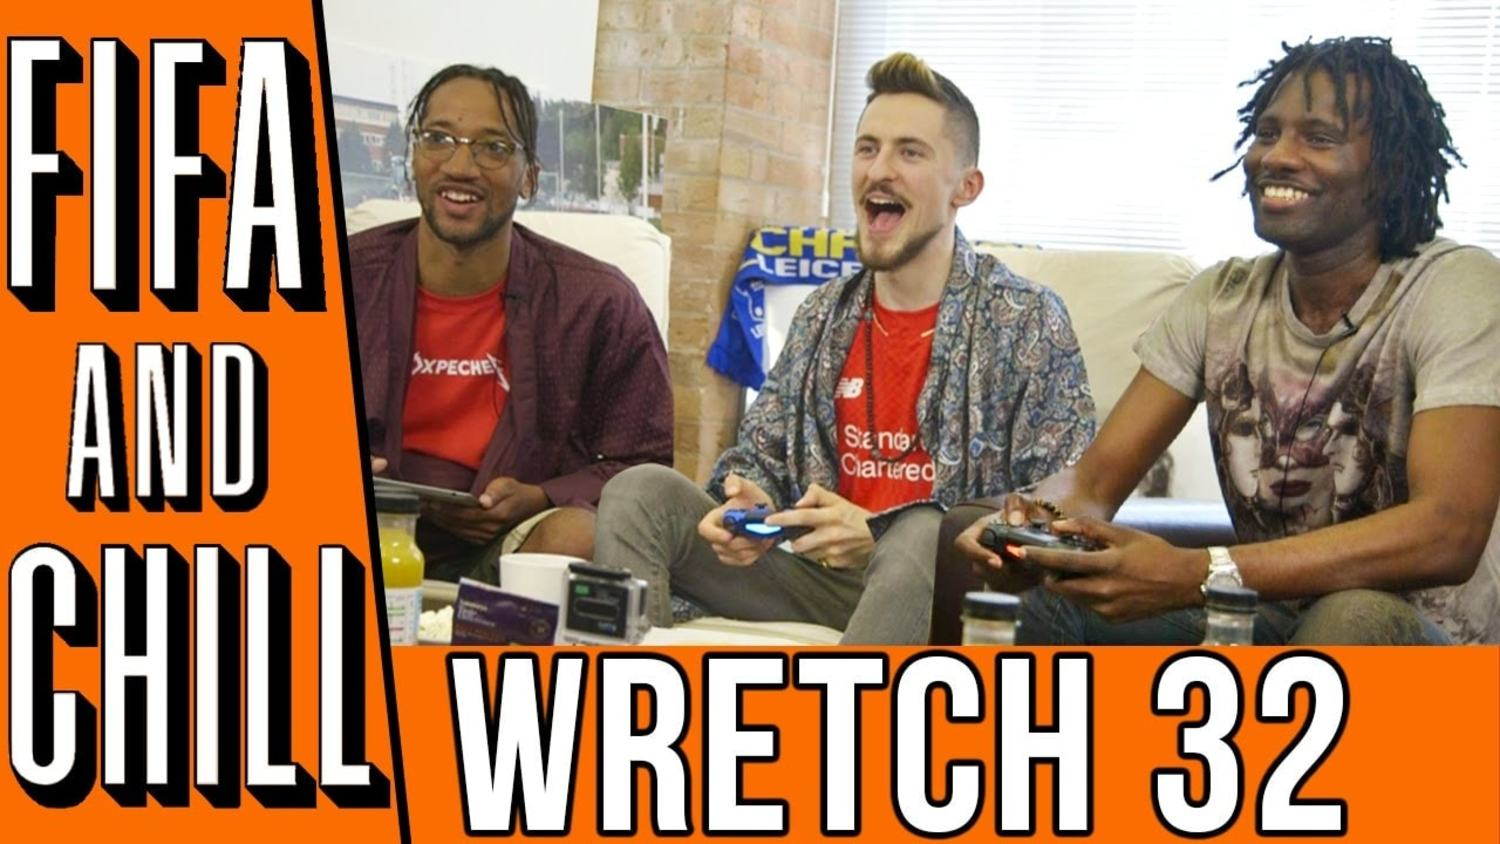 FIFA and Chill with Wretch 32 and Avelino: On Ian Wright, Euros and more!